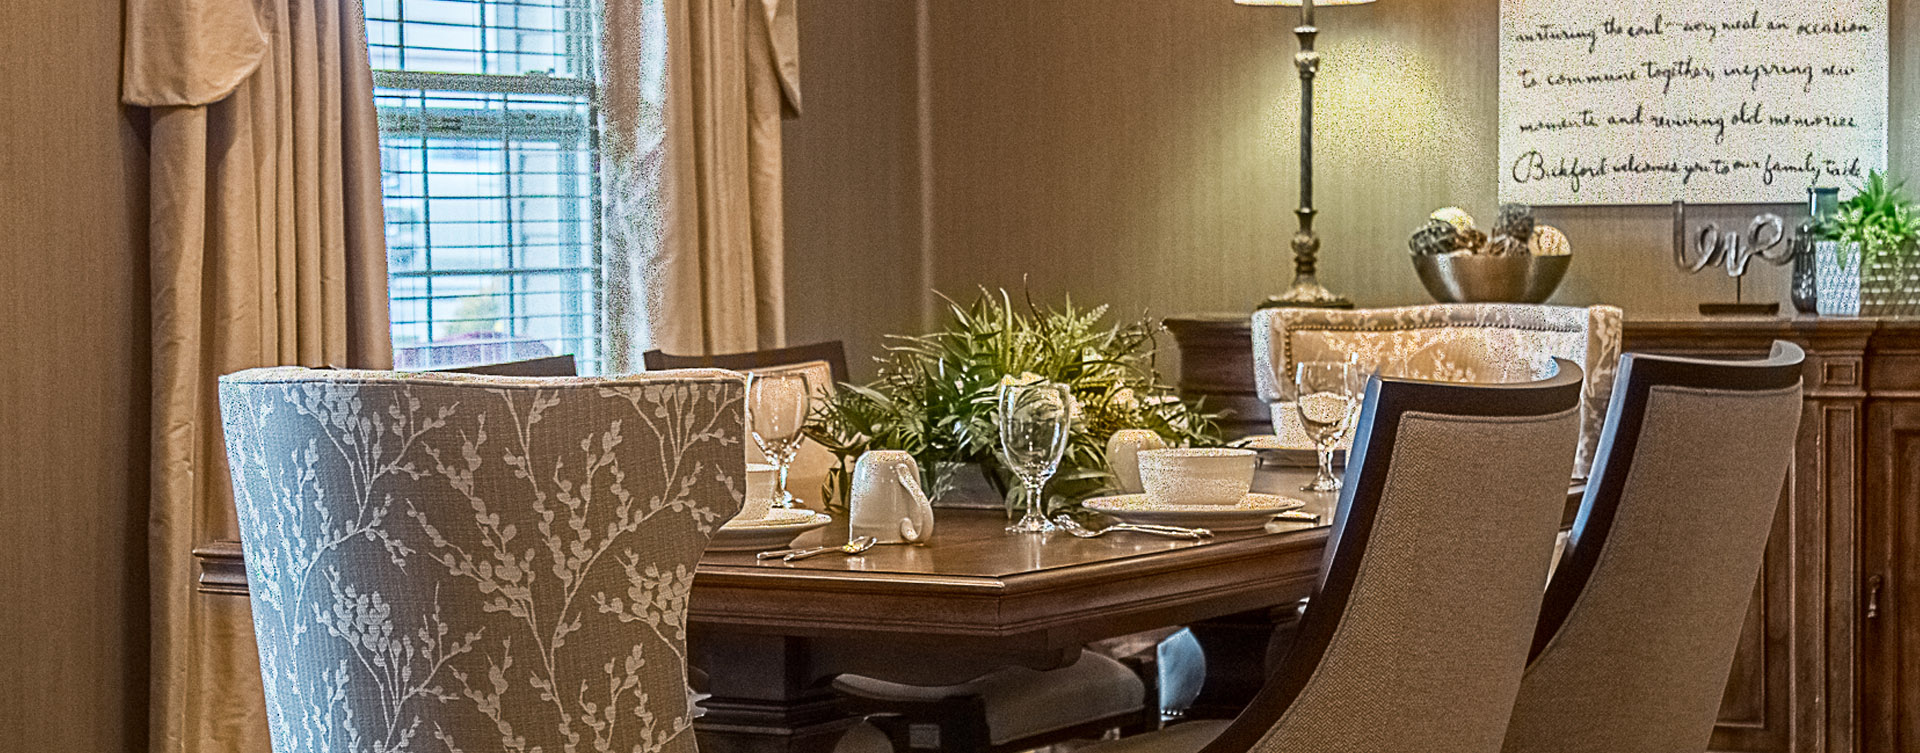 Have fun with themed and holiday meals in the private dining room at Bickford of Davenport